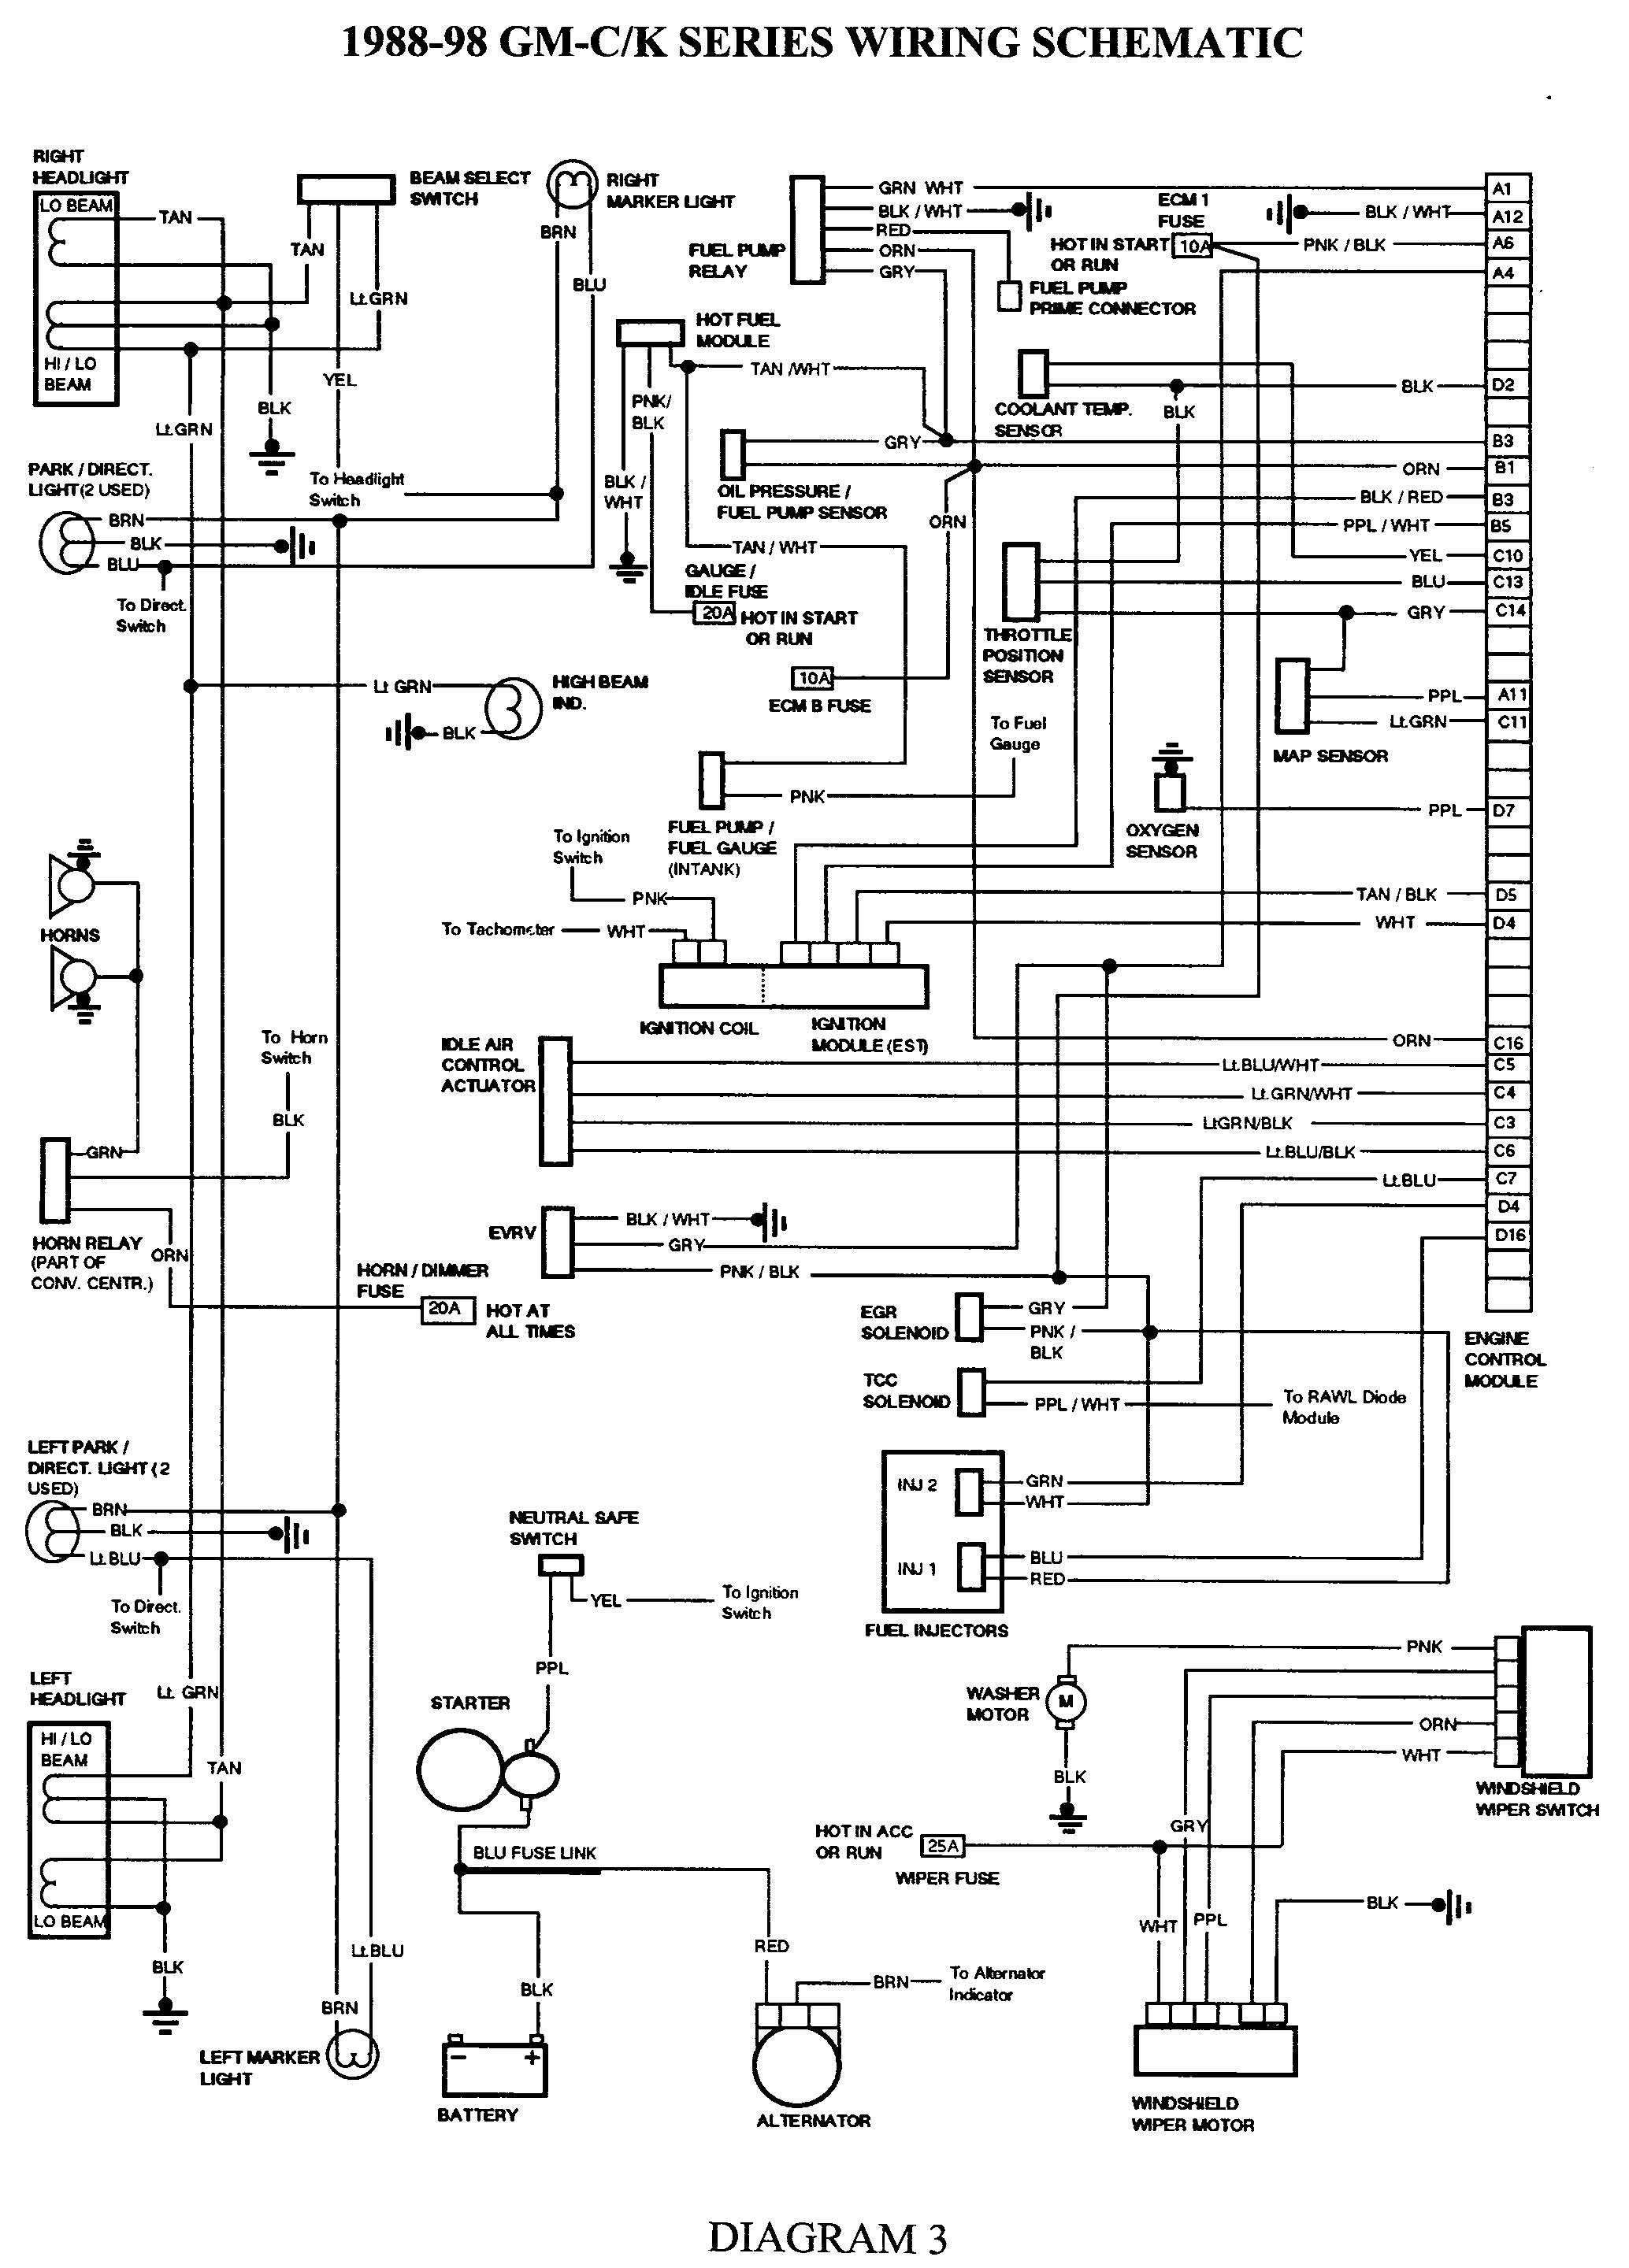 Fuel Pump Wiring Diagram 1998 Chevy Truck from i.pinimg.com